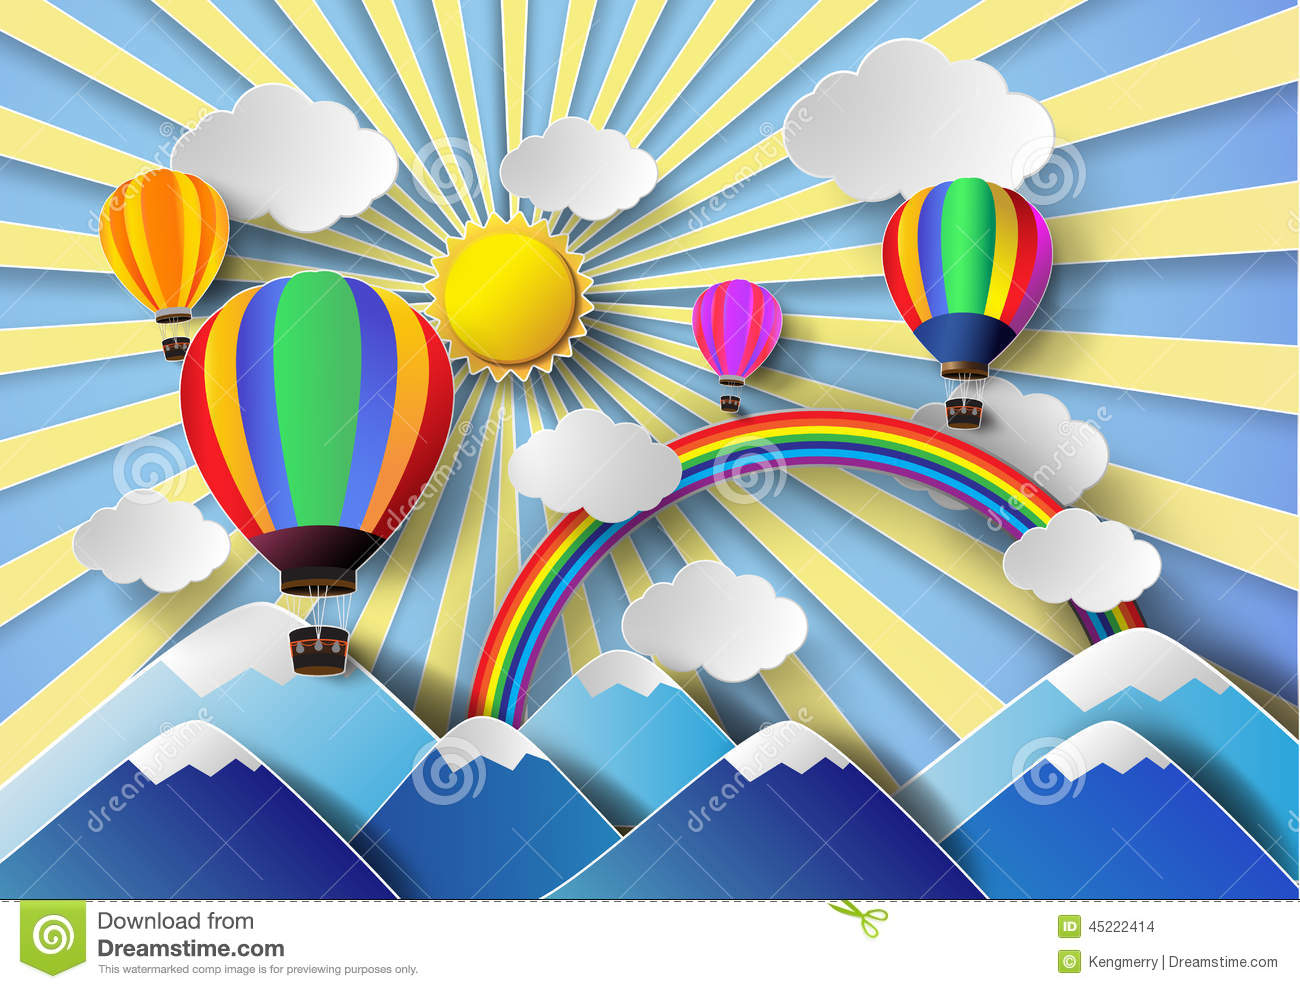 hot air balloons research paper Ti~ first experiments of the montgolfiers with hot air balloons the history of the balloon began in 1783 when etienne and joseph montgolfier started to experiment with hydrogen-filled paper bags they were led by the correct idea that a buoyant force should cause the ascent of the bags if the inside gas.